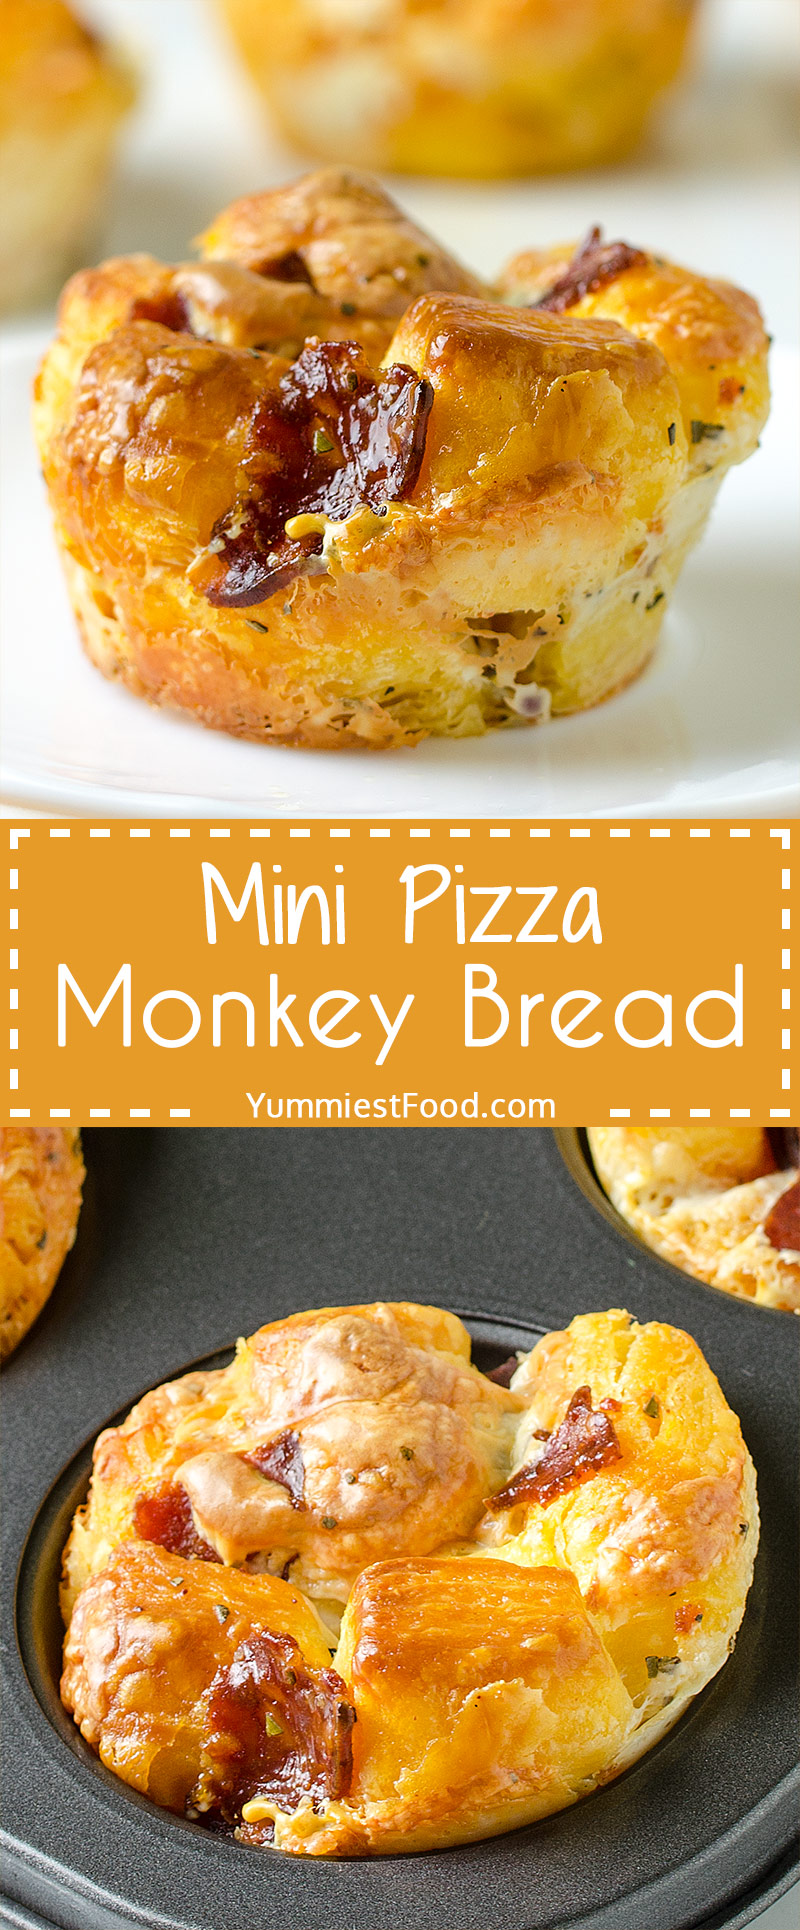 MINI PIZZA MONKEY BREAD – Simple Pizza Monkey Bread bites